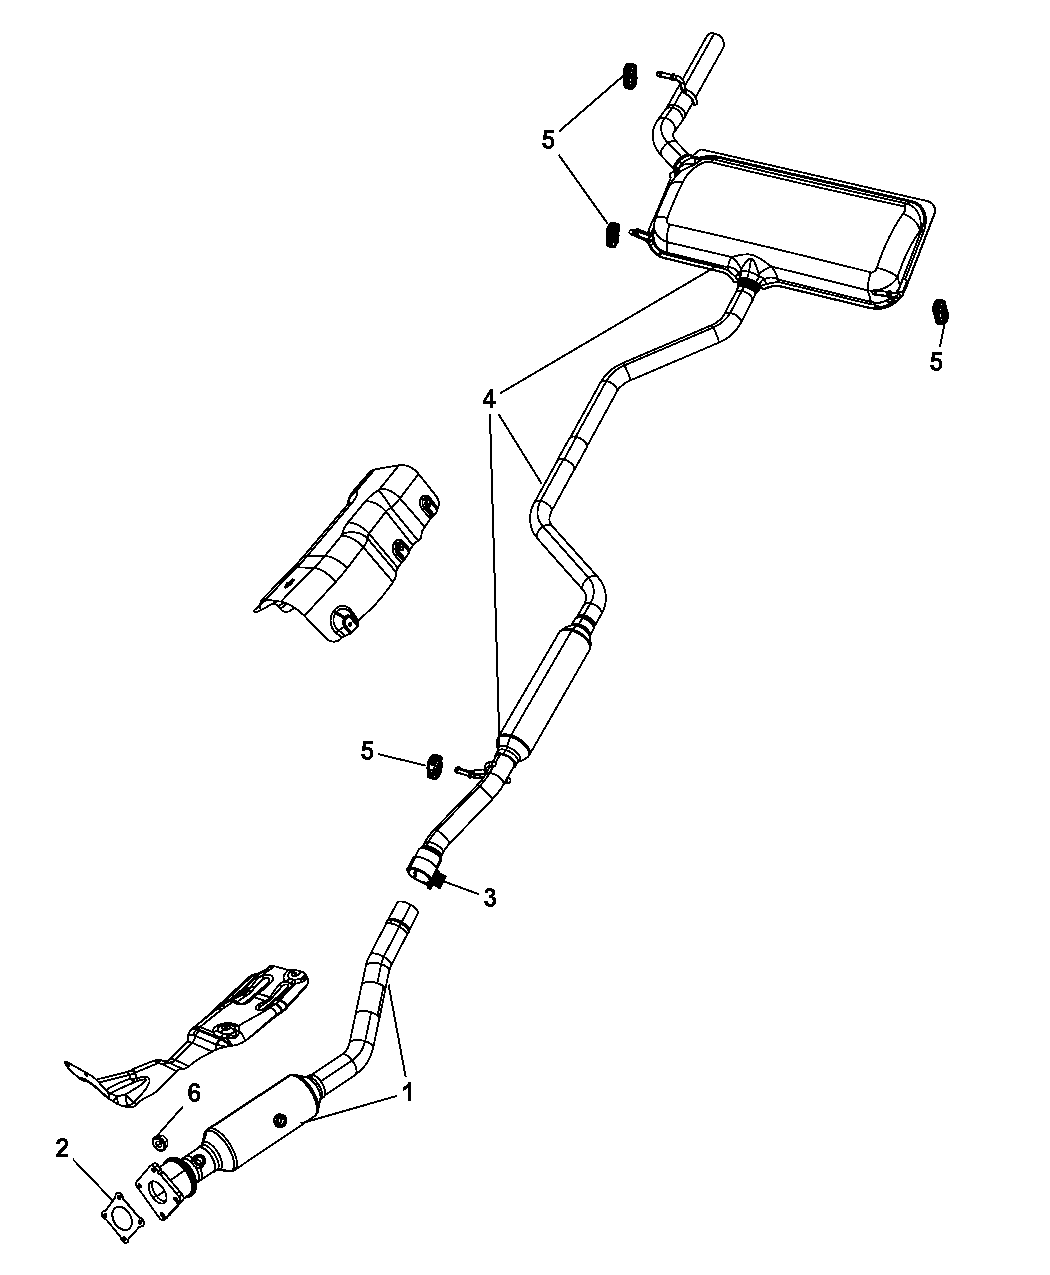 2010 Dodge Journey Exhaust System Mopar Parts Giant Pics Photos Detail Diagram For Thumbnail 4